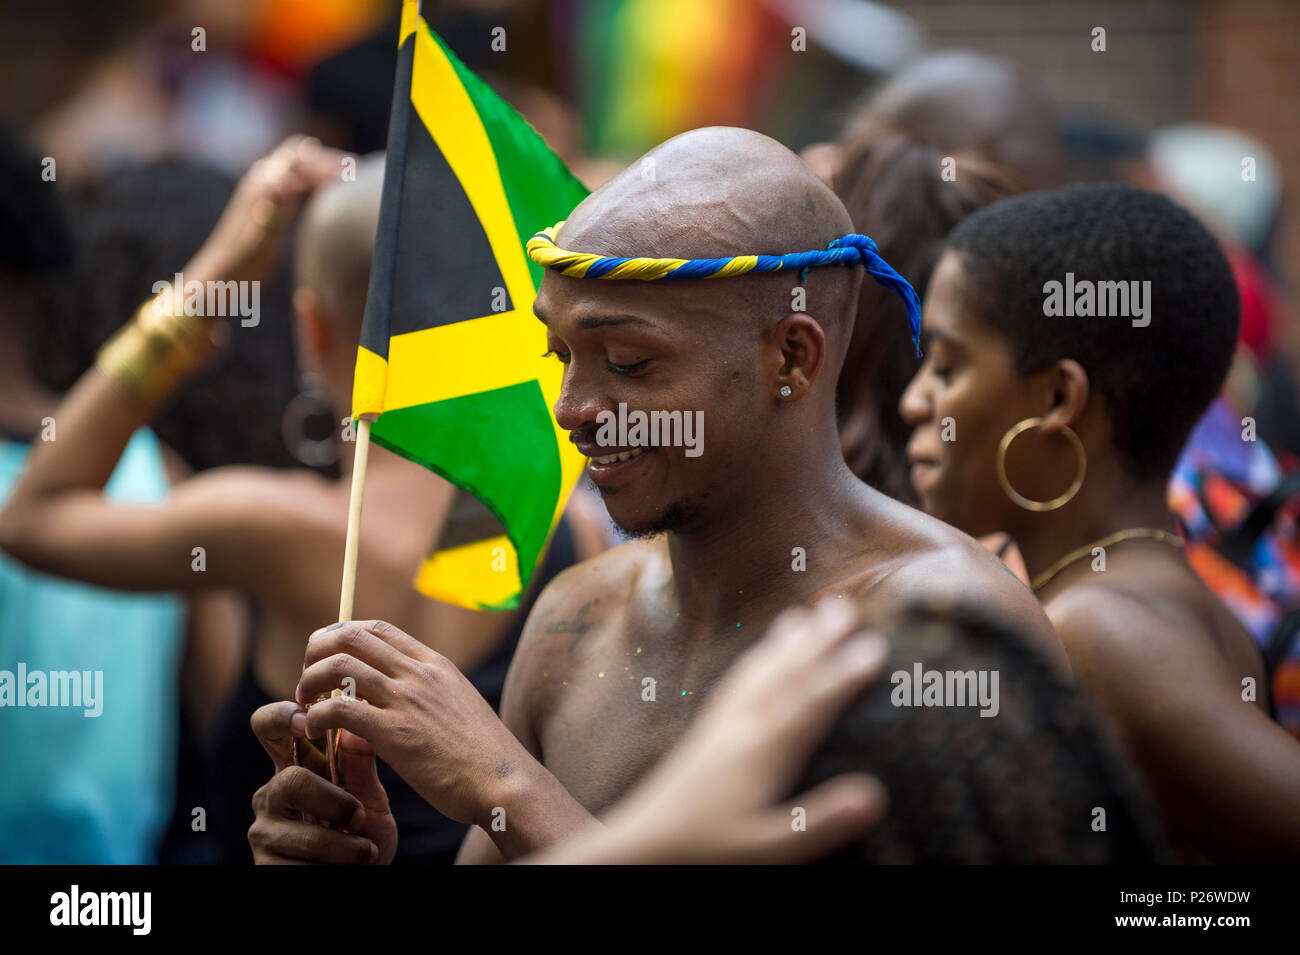 man at nyc pride stock photos man at nyc pride stock images alamy. Black Bedroom Furniture Sets. Home Design Ideas